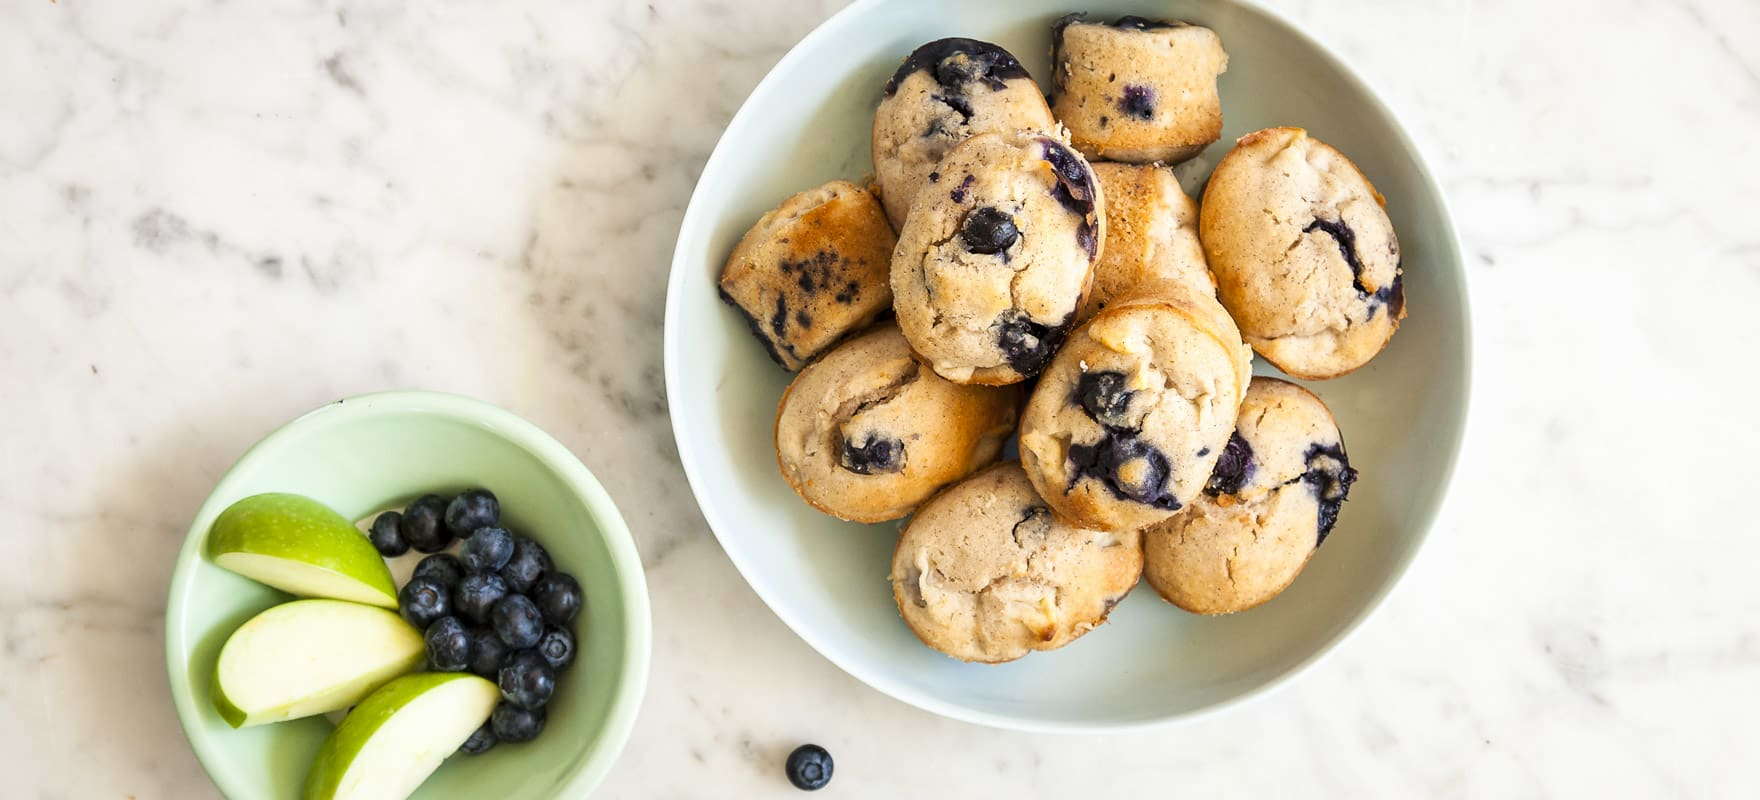 Apple blueberry friands image 1